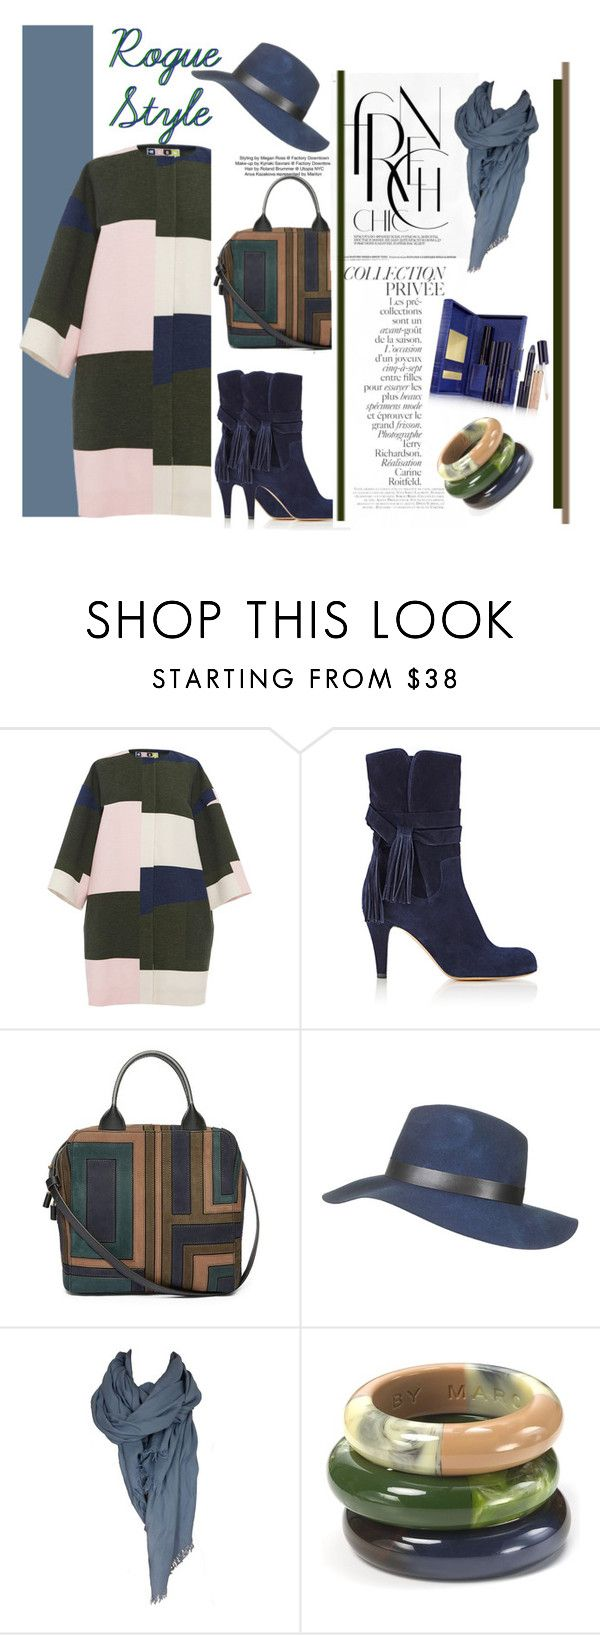 """""""Rogue Style"""" by emcf3548 ❤ liked on Polyvore featuring MSGM, Chloé, Tory Burch, Topshop, Nicole Farhi, By Terry, Marc by Marc Jacobs and Estée Lauder"""